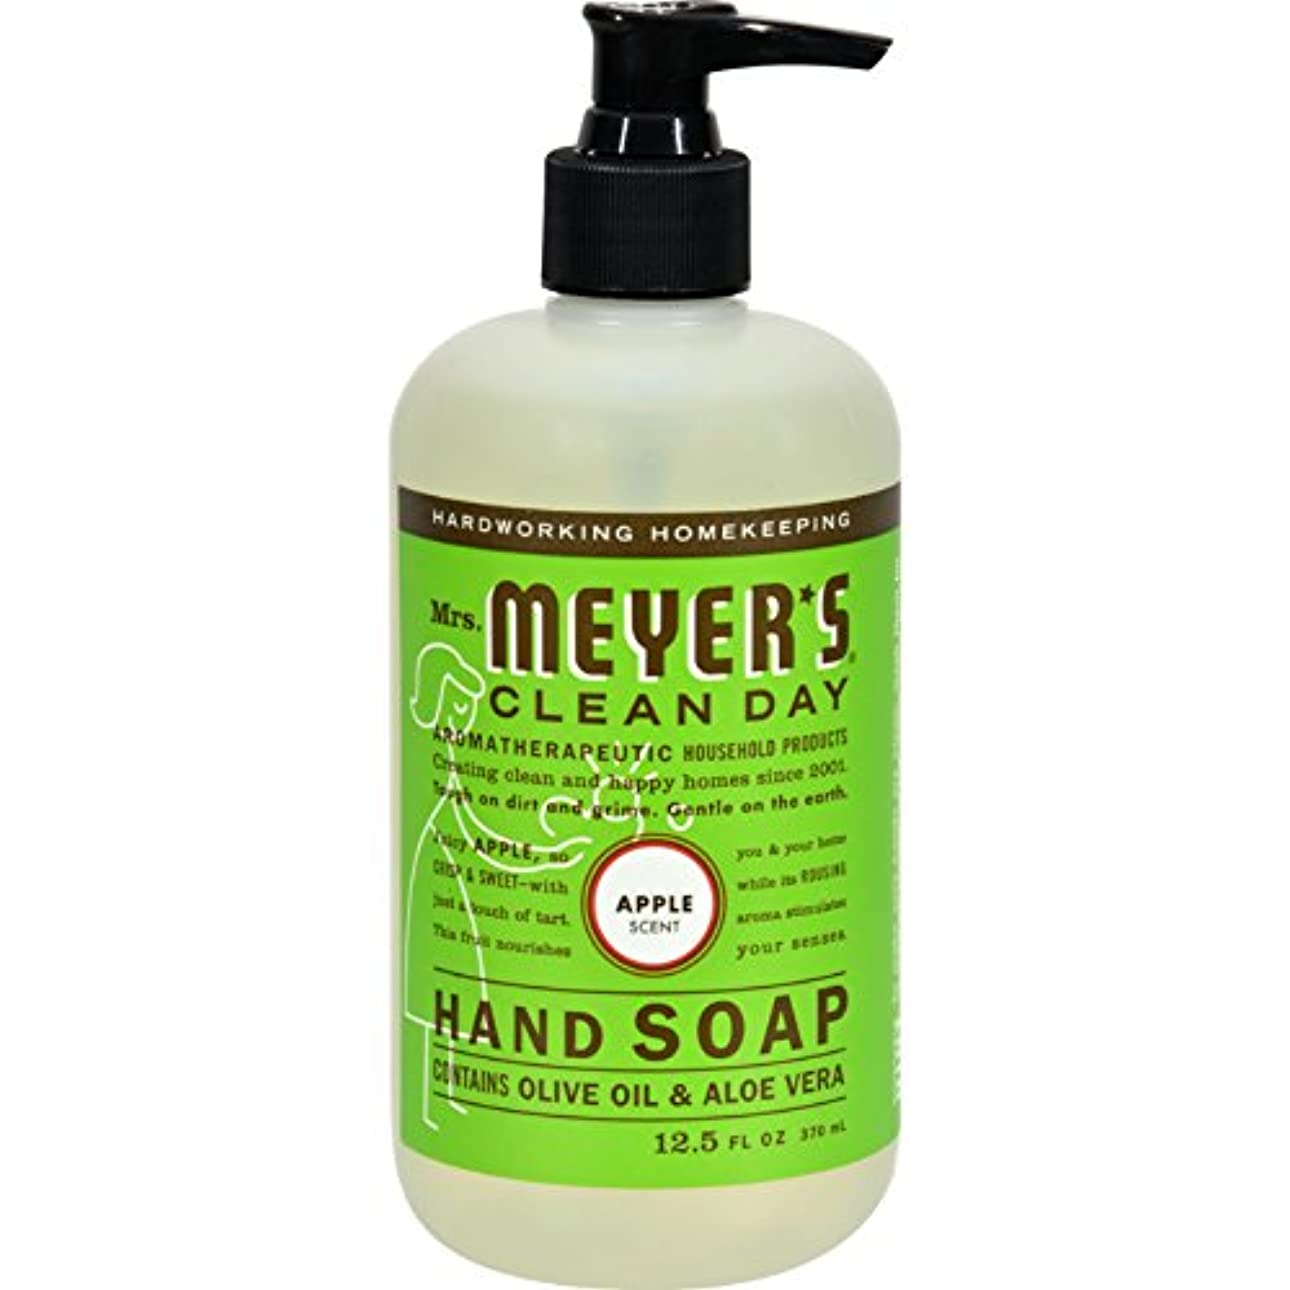 生態学交差点ずっとLiquid Hand Soap - Apple - Case of 6 - 12.5 oz by Mrs. Meyer's